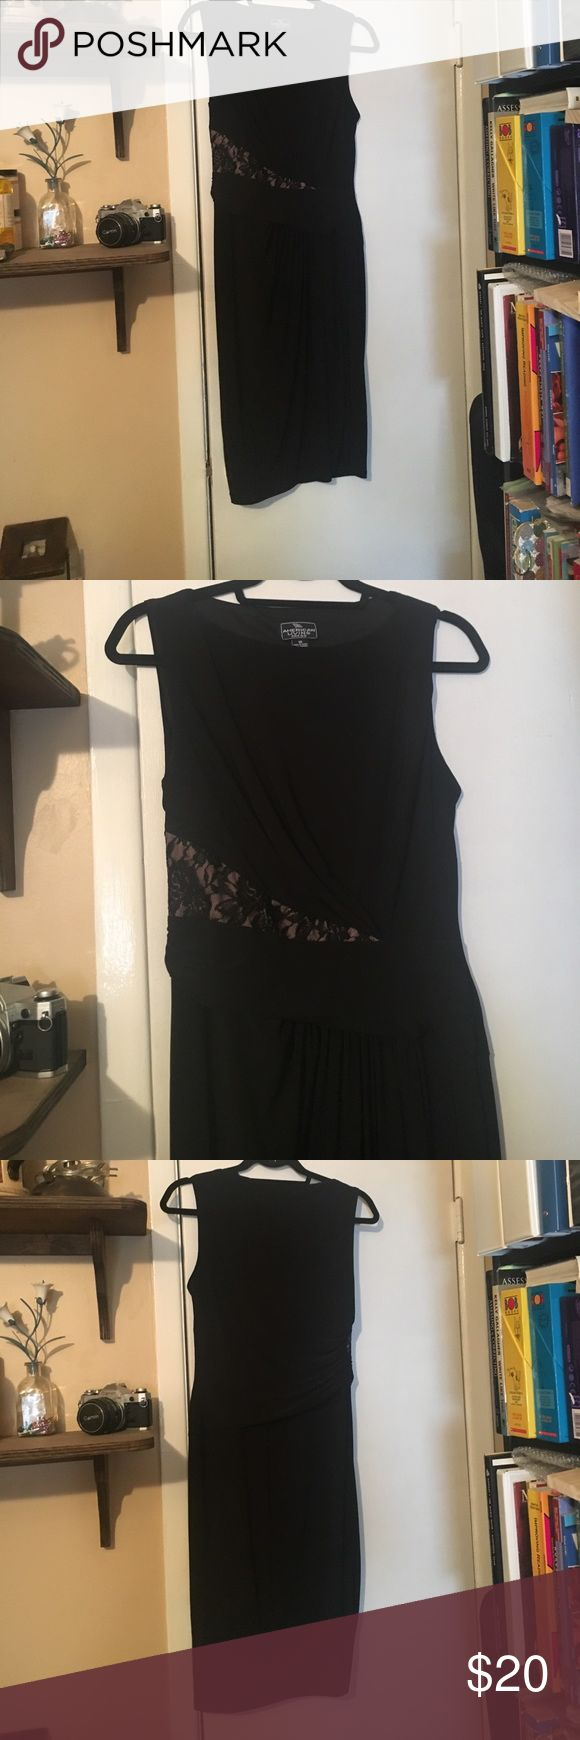 Elegant cocktail dress Below knee. Rose lace detail on side. Ruching accentuates curves, while hiding imperfections. Dresses Midi